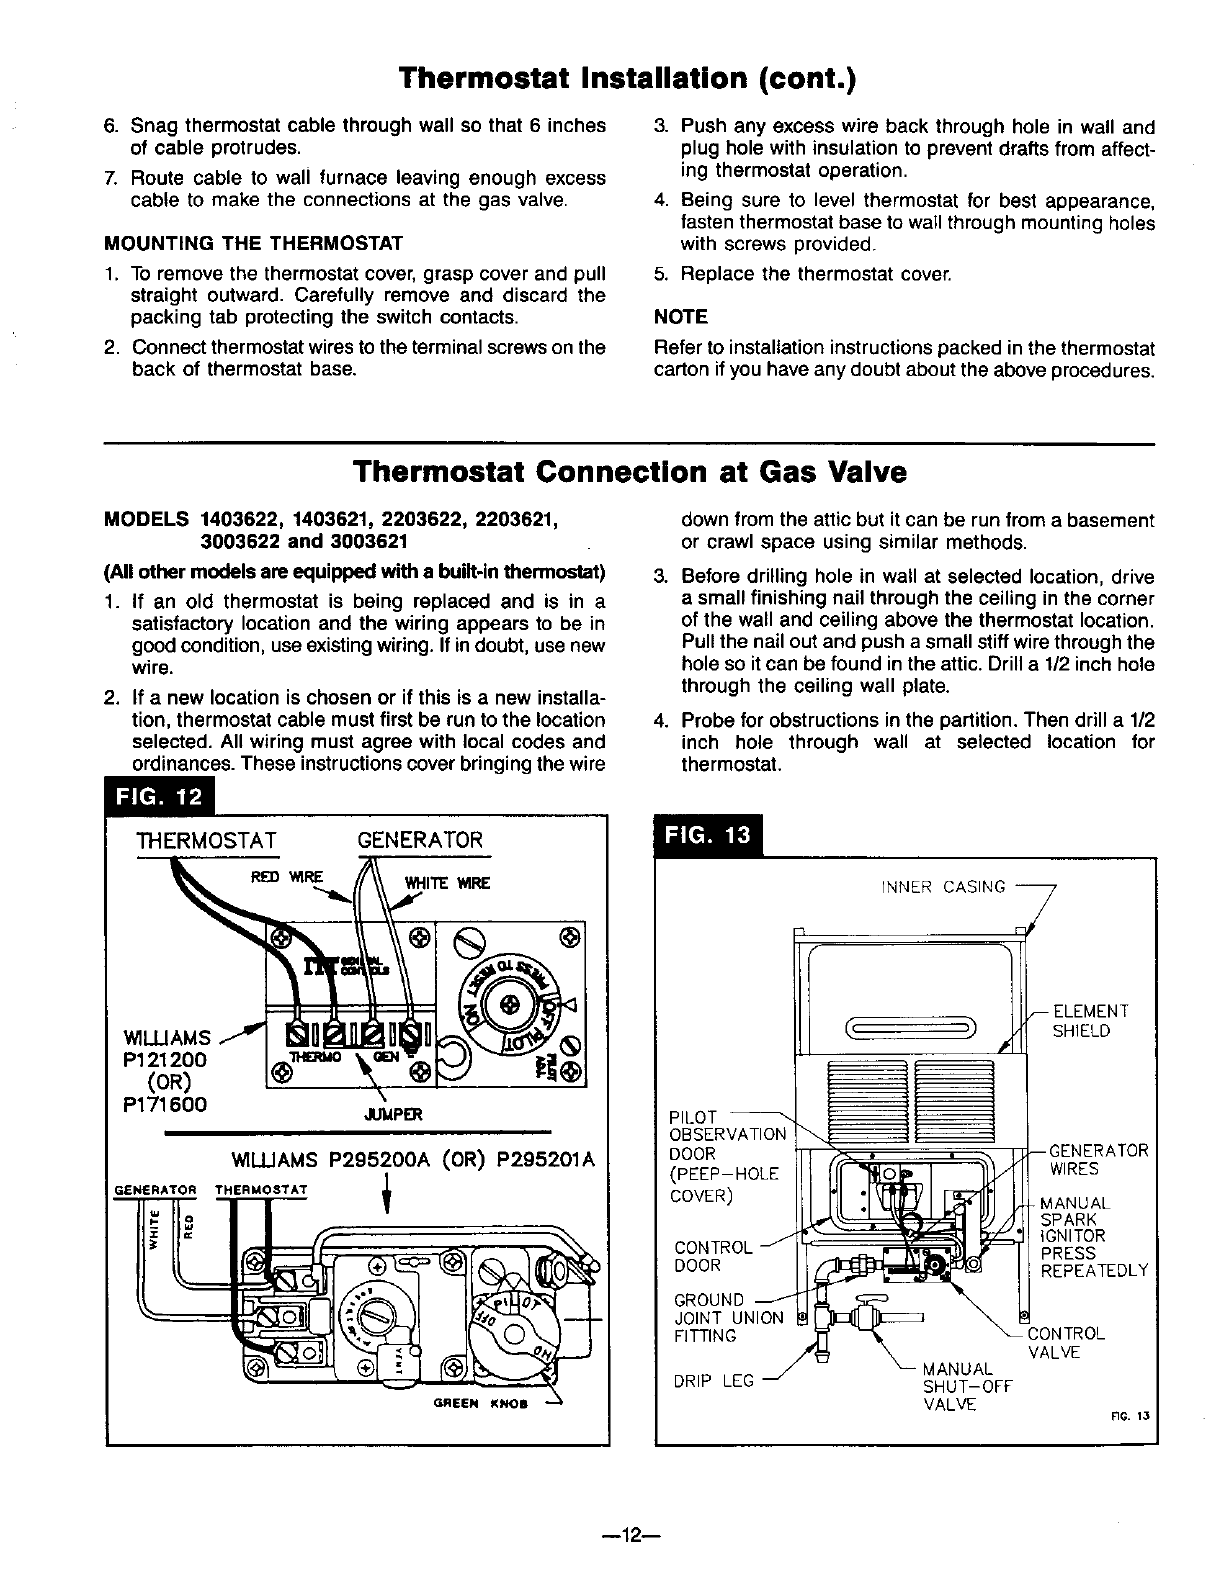 Wall Furnace Thermostat Wiring Auto Electrical Diagram Williams P322016